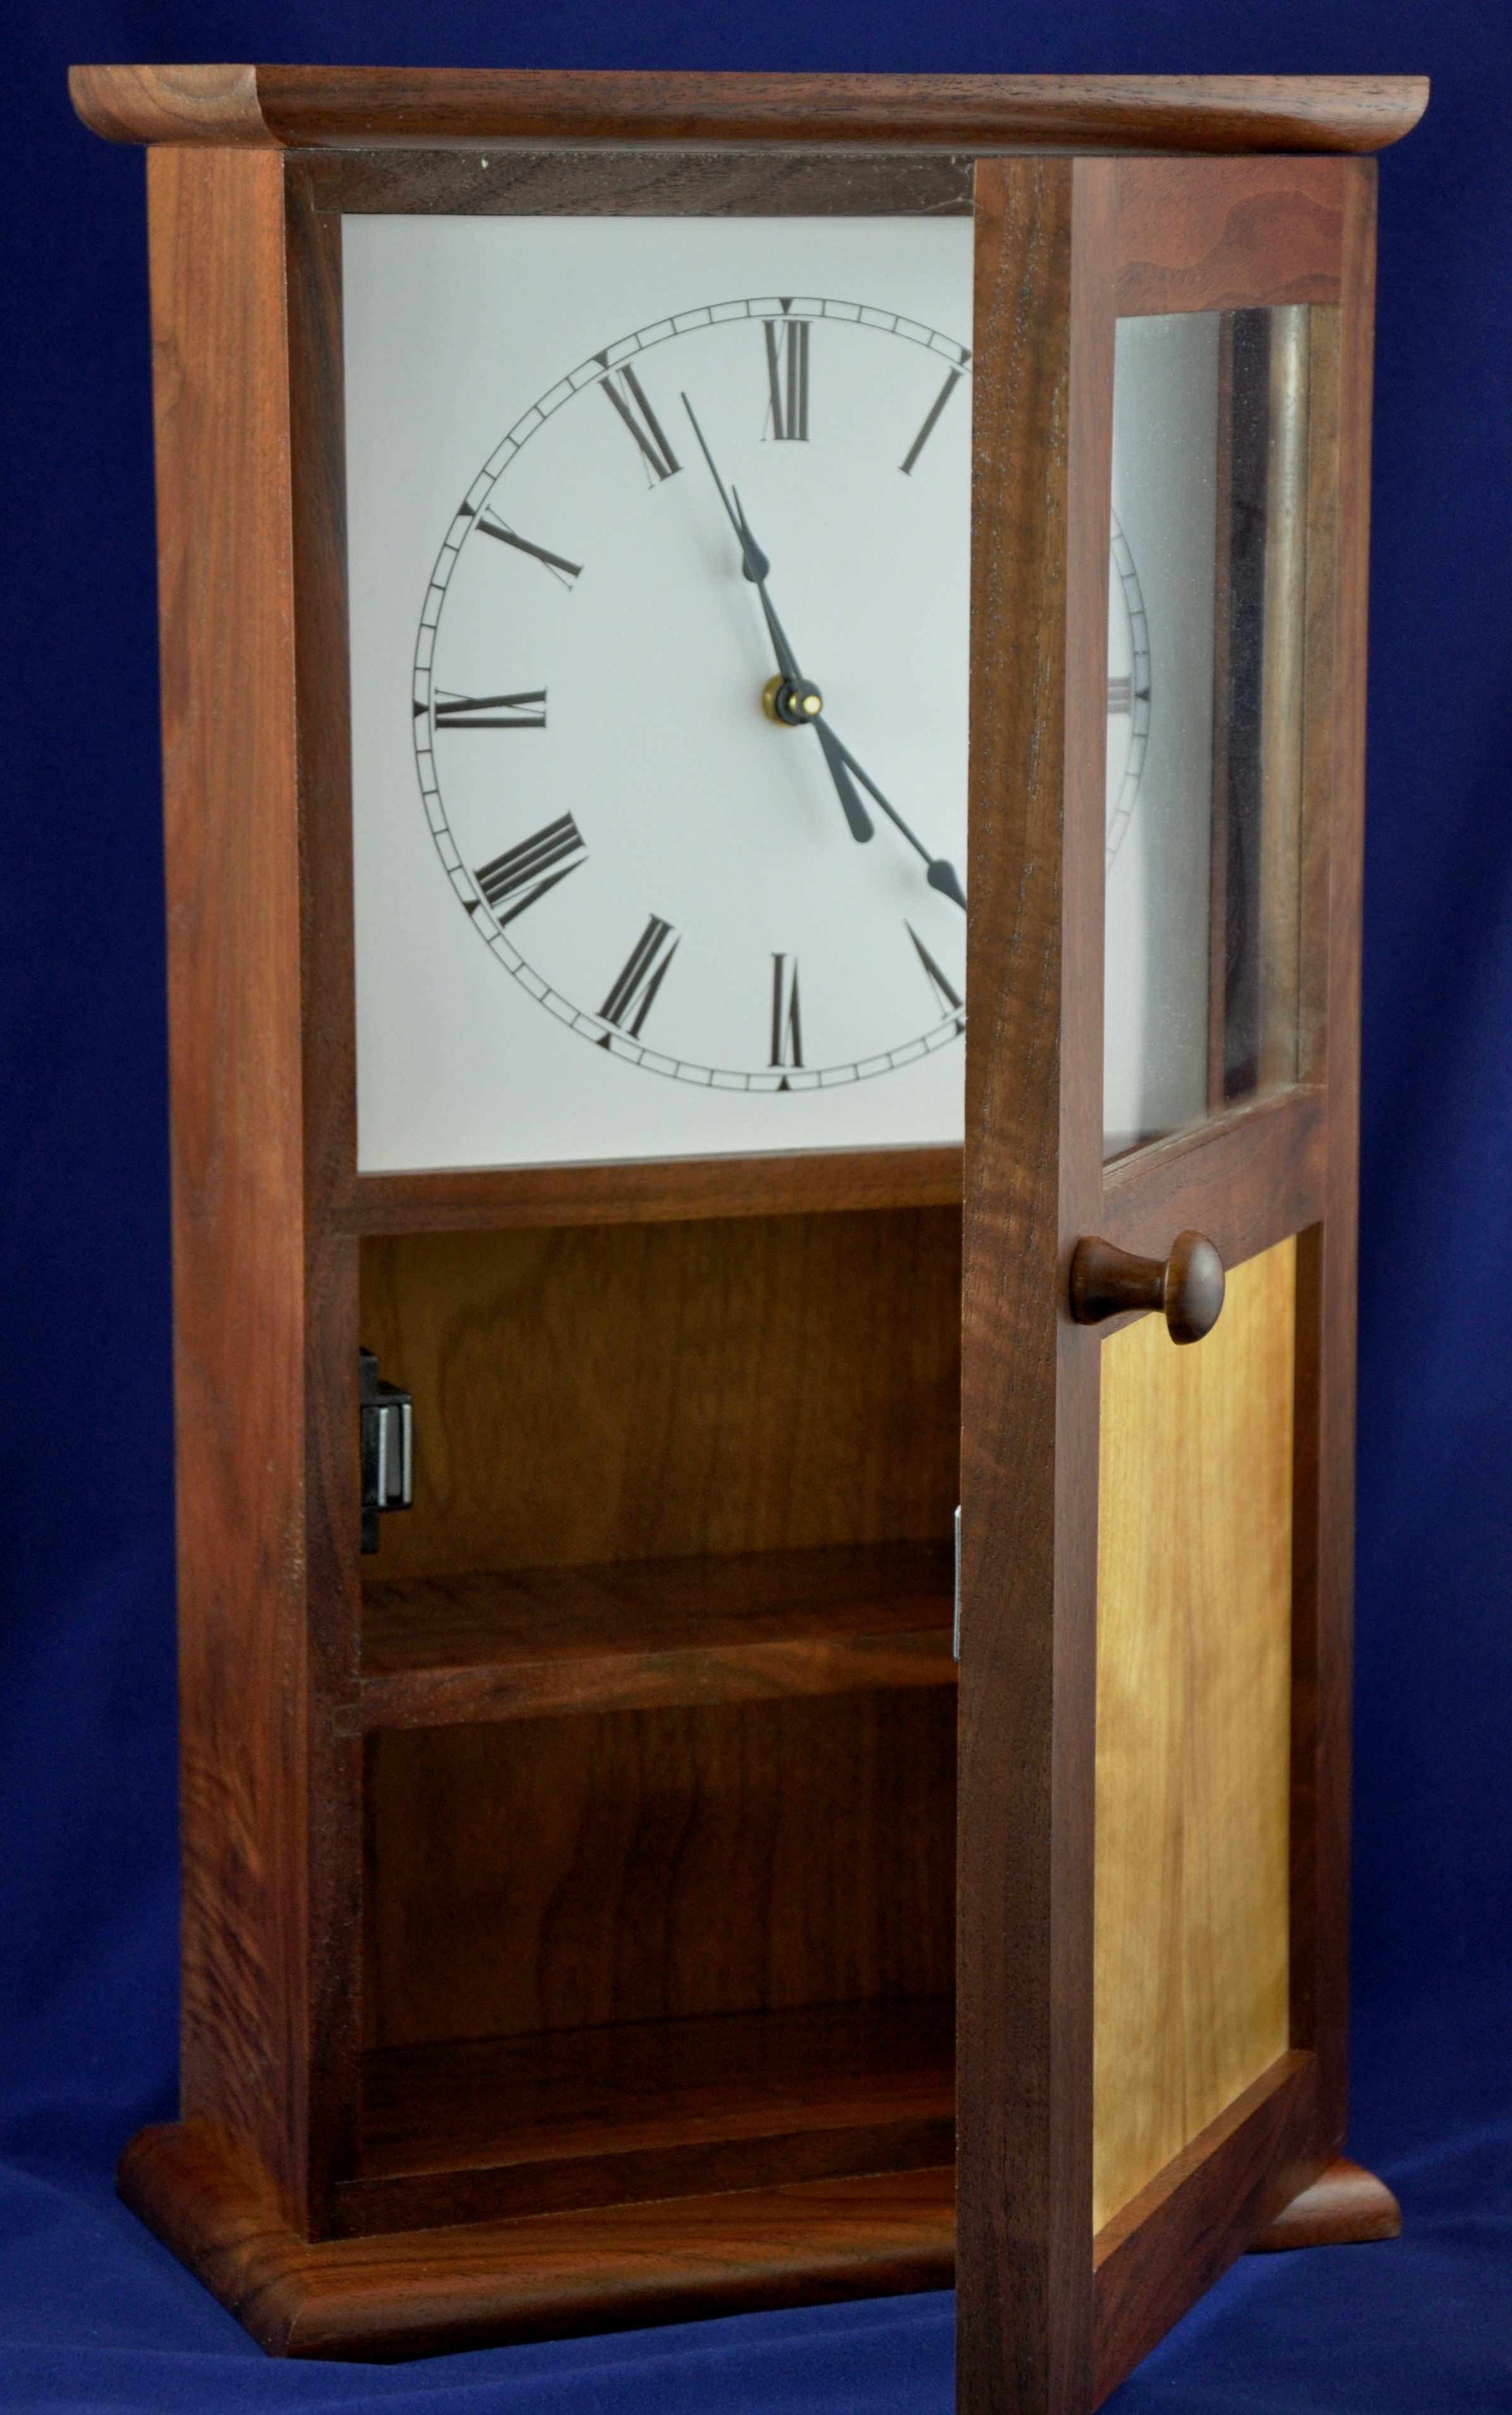 Clocks winding river workshop shaker mantle clock amipublicfo Image collections